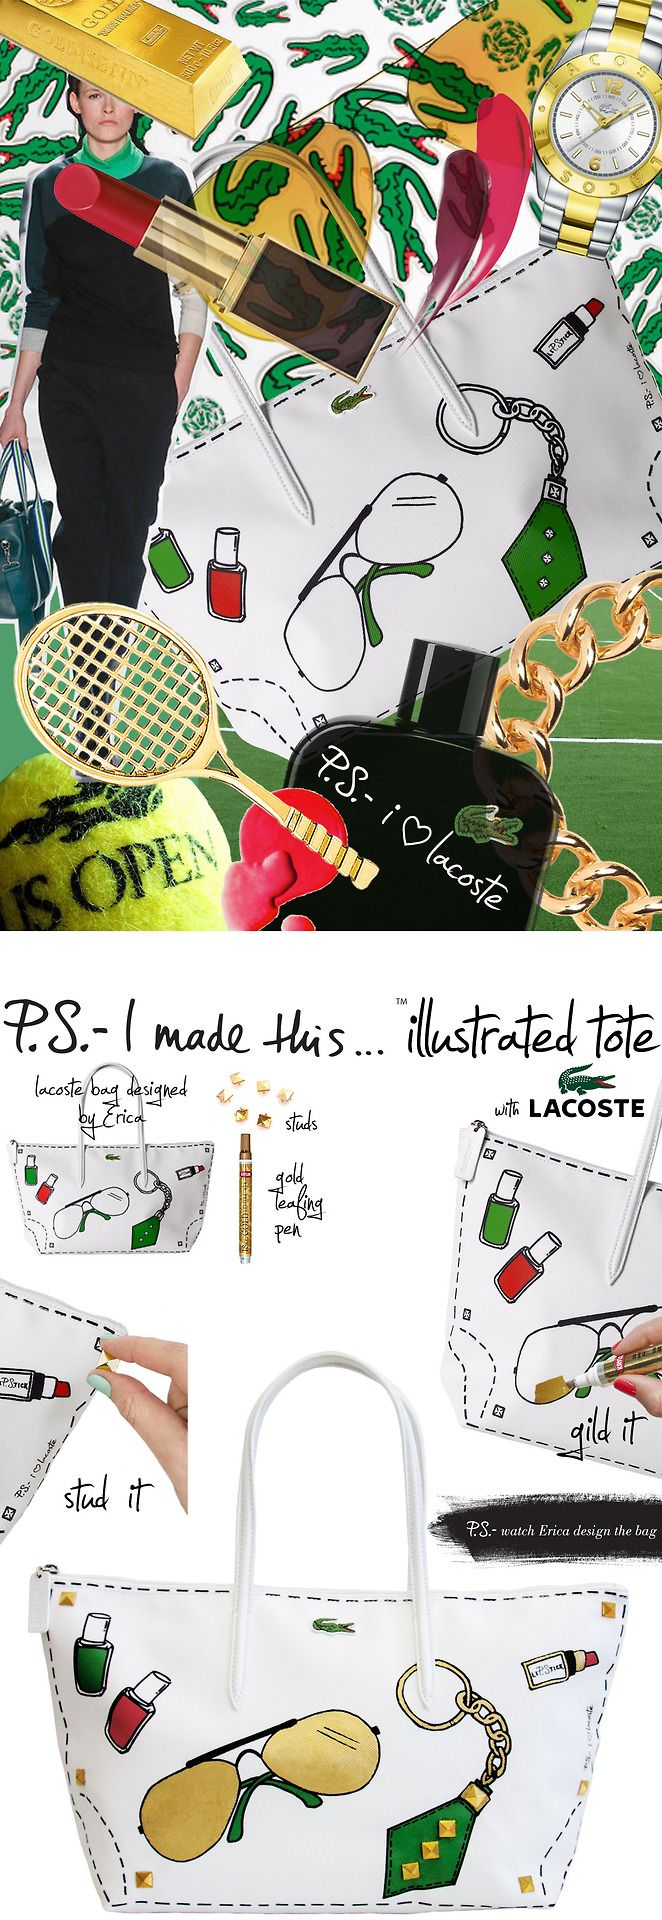 P.S.-I made this...Illustrated Tote with @Lacoste  #L1212Bag Available here:  http://shop.lacoste.com/L-12-12-Concept-Blogger-Bag-Erica/dp/B00EA9L1X2/?intid=link_bloggercollection_09112013_PSIMadeThis#.UjMsg2TXQ7Q